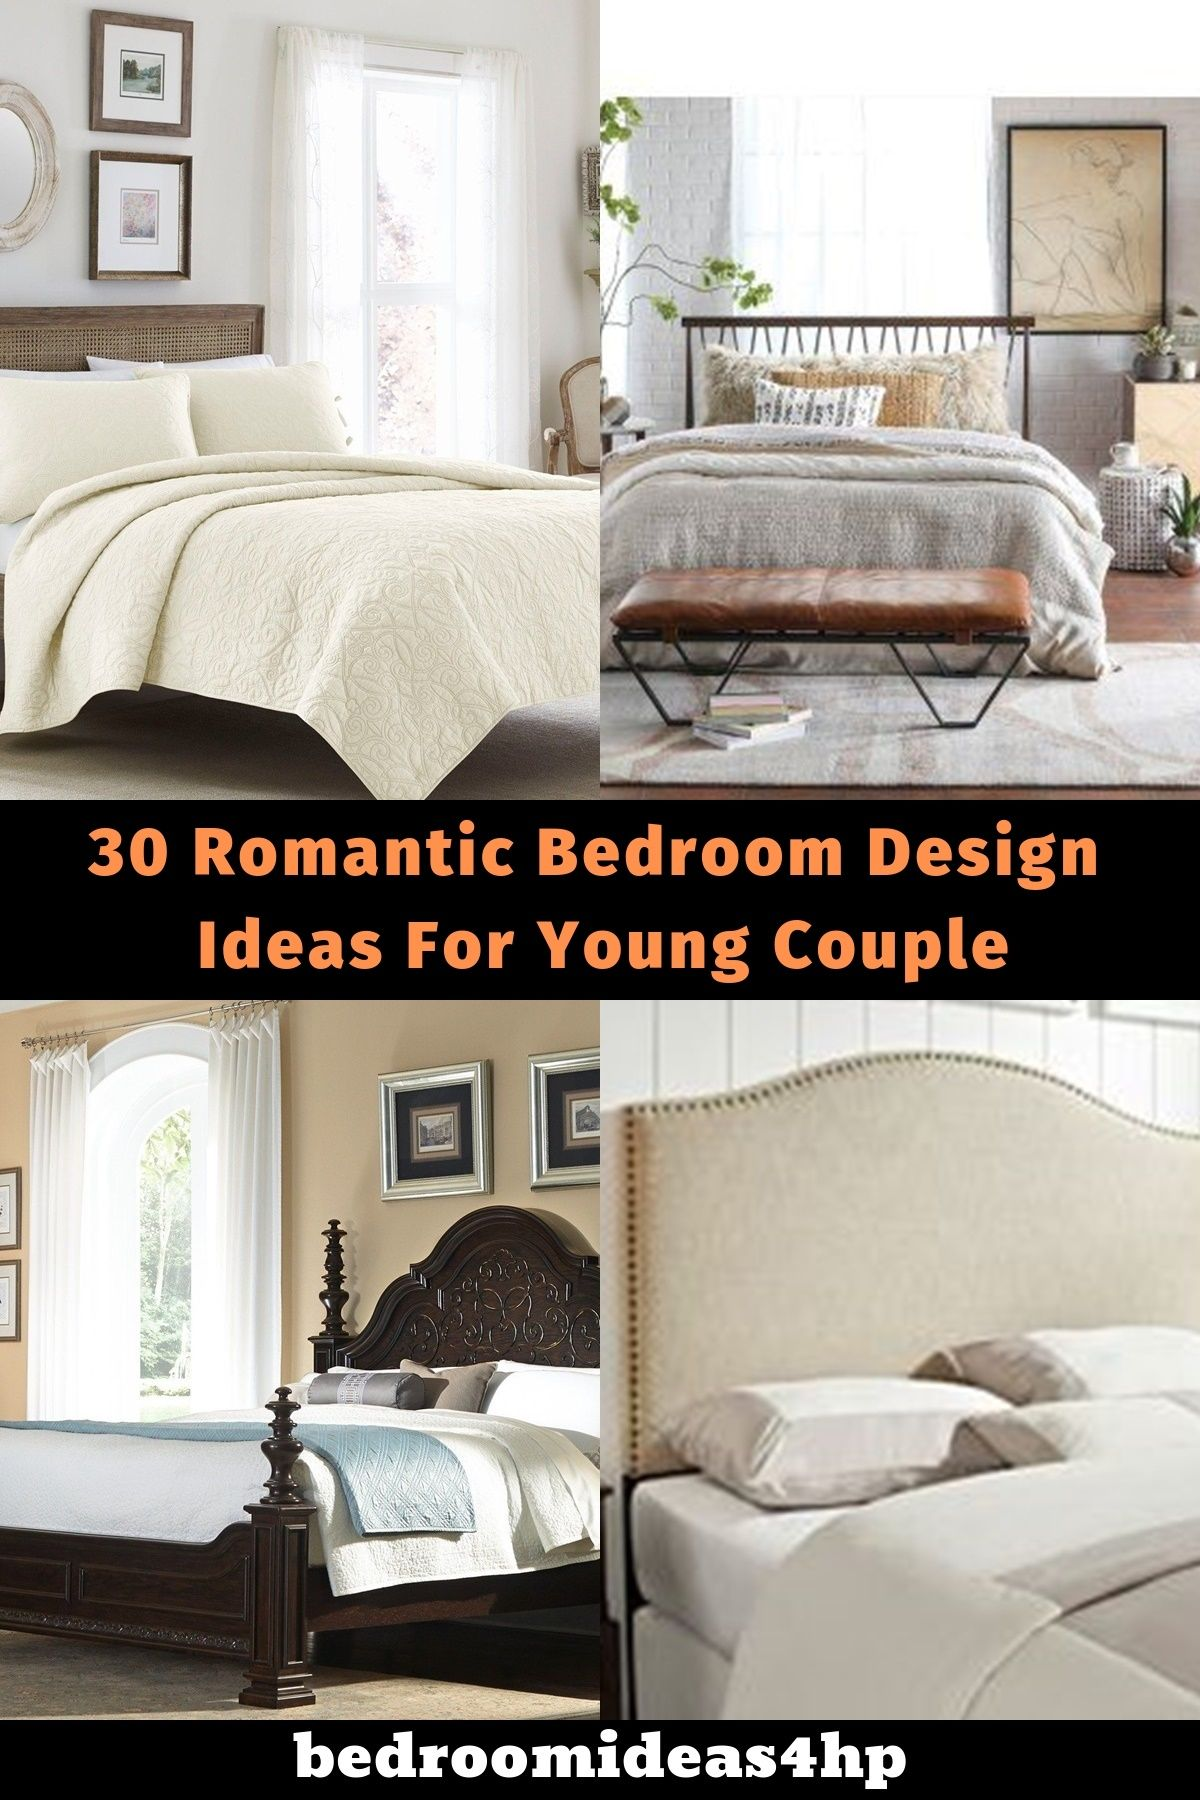 Swell 30 Romantic Bedroom Design Ideas For Young Couple Home Download Free Architecture Designs Scobabritishbridgeorg